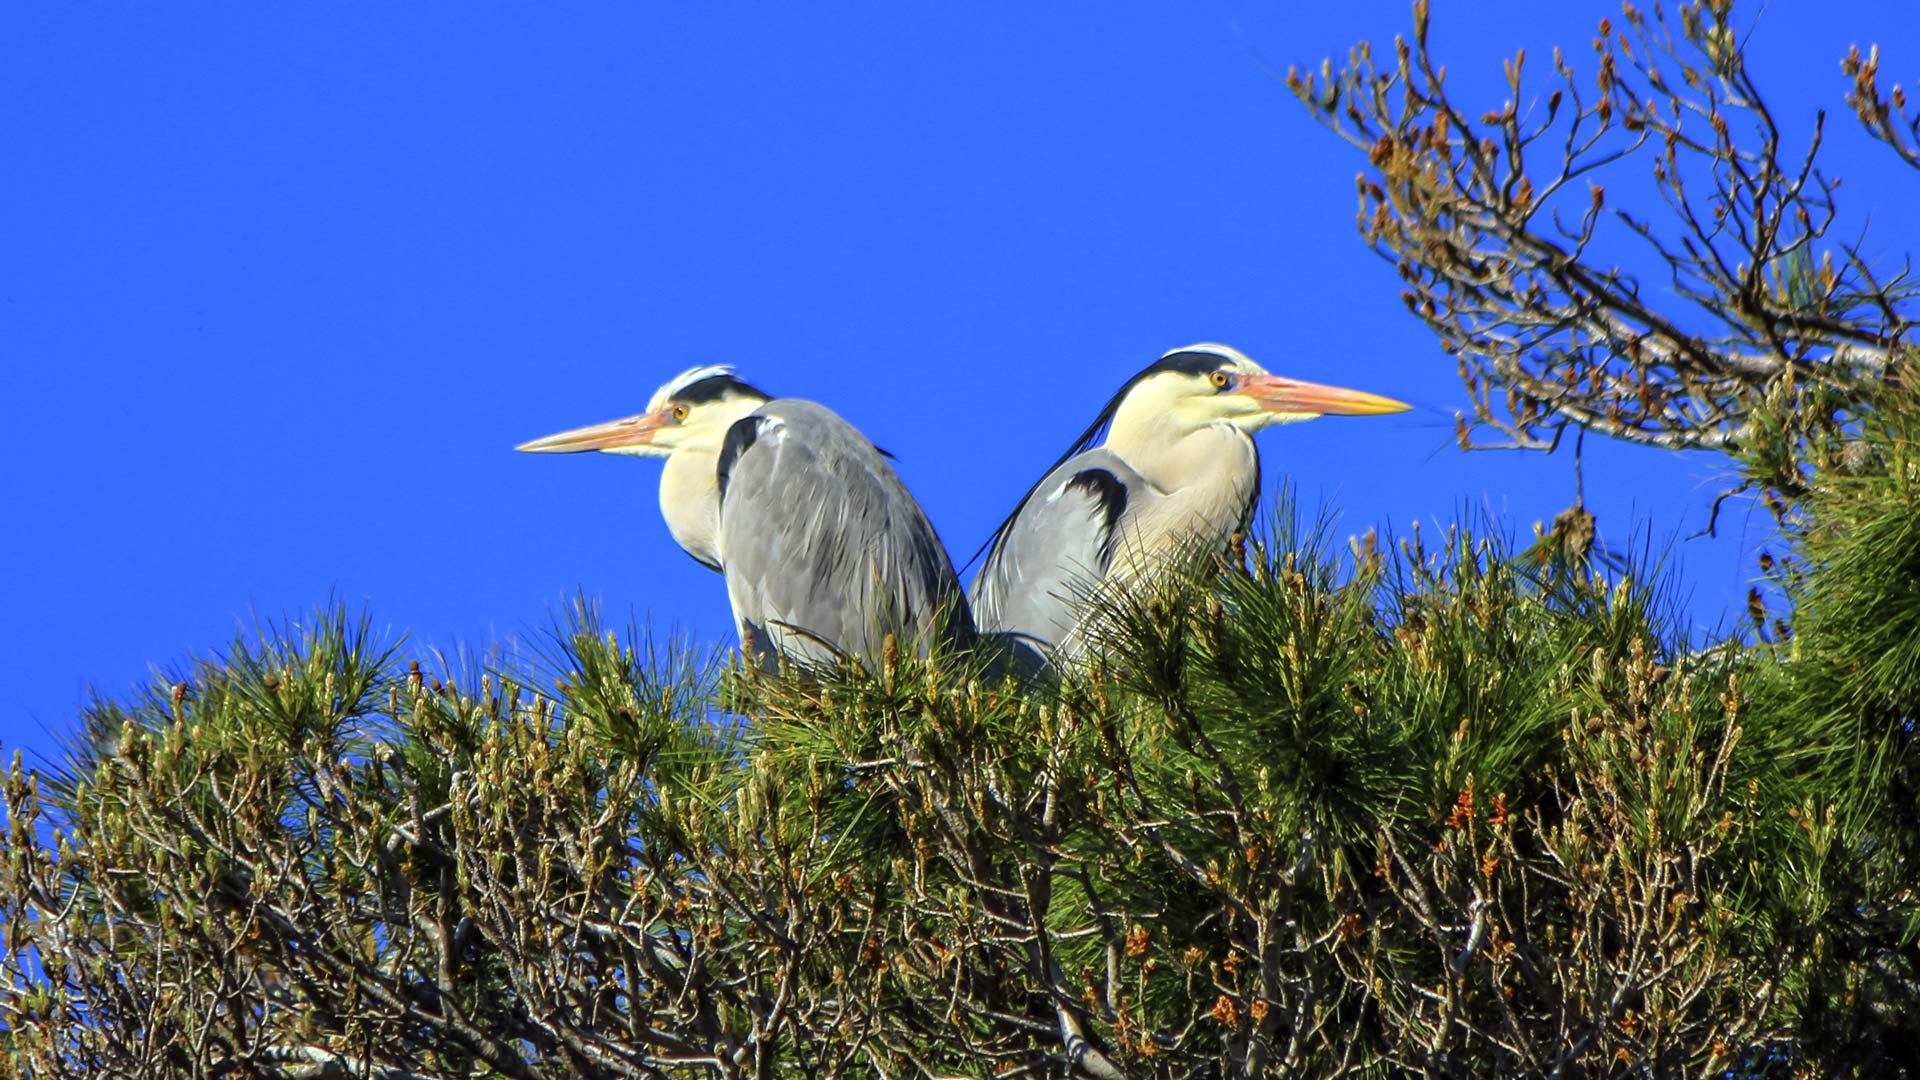 Grey herons, ardea cinerea, in a tree, Camargue, France